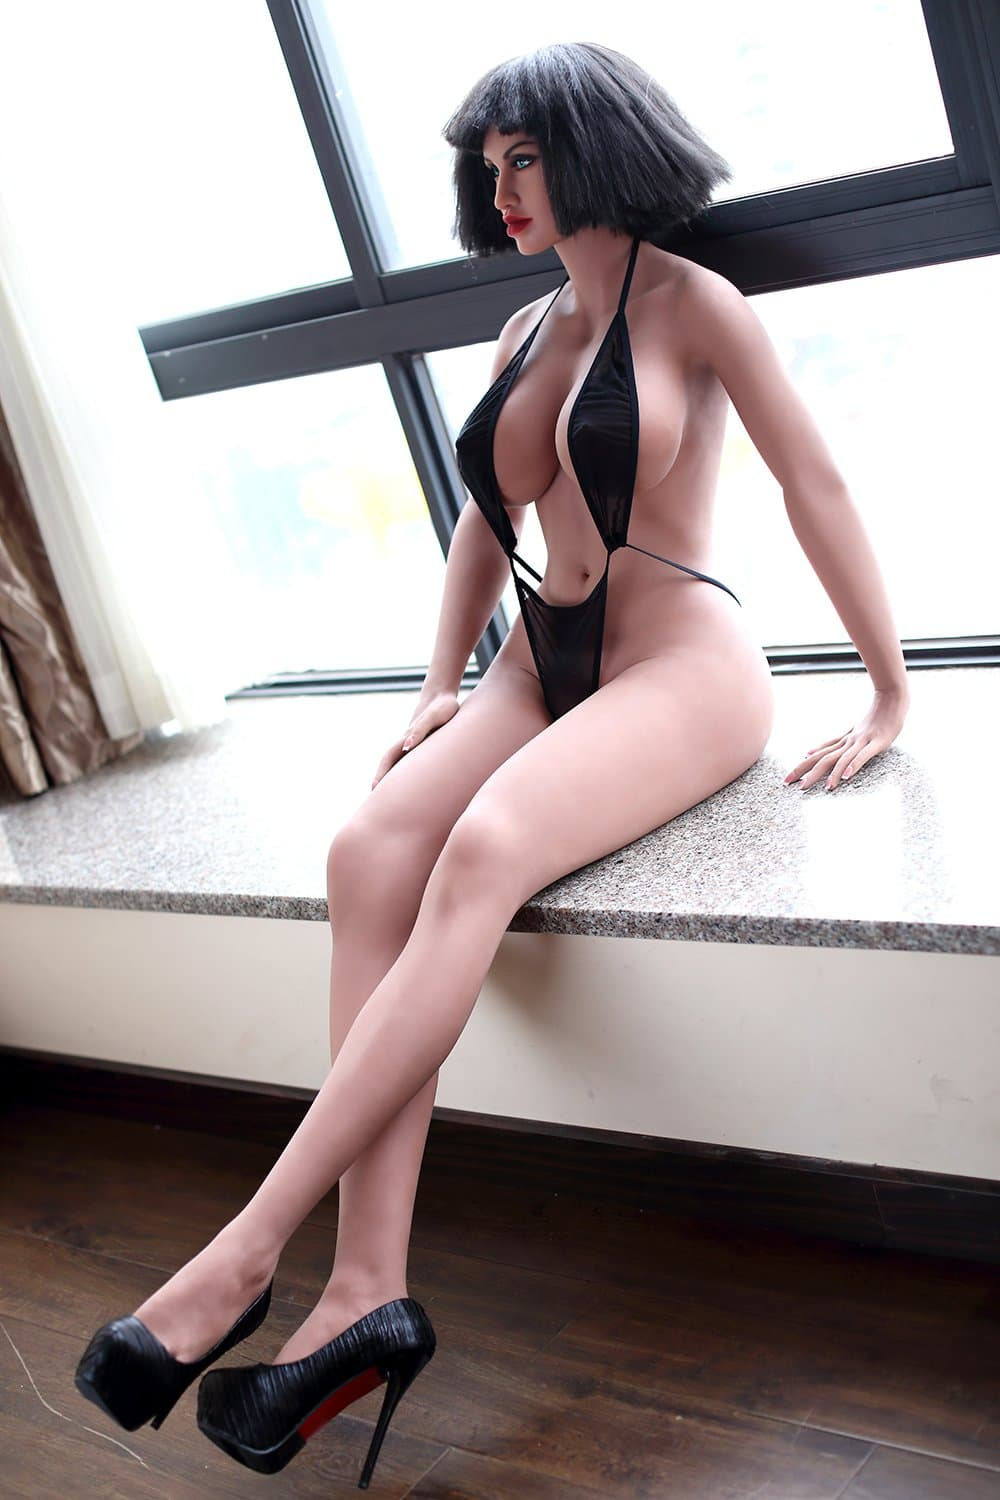 kimberly 168cm black hair big boobs athletic tpe wm sex doll(11)